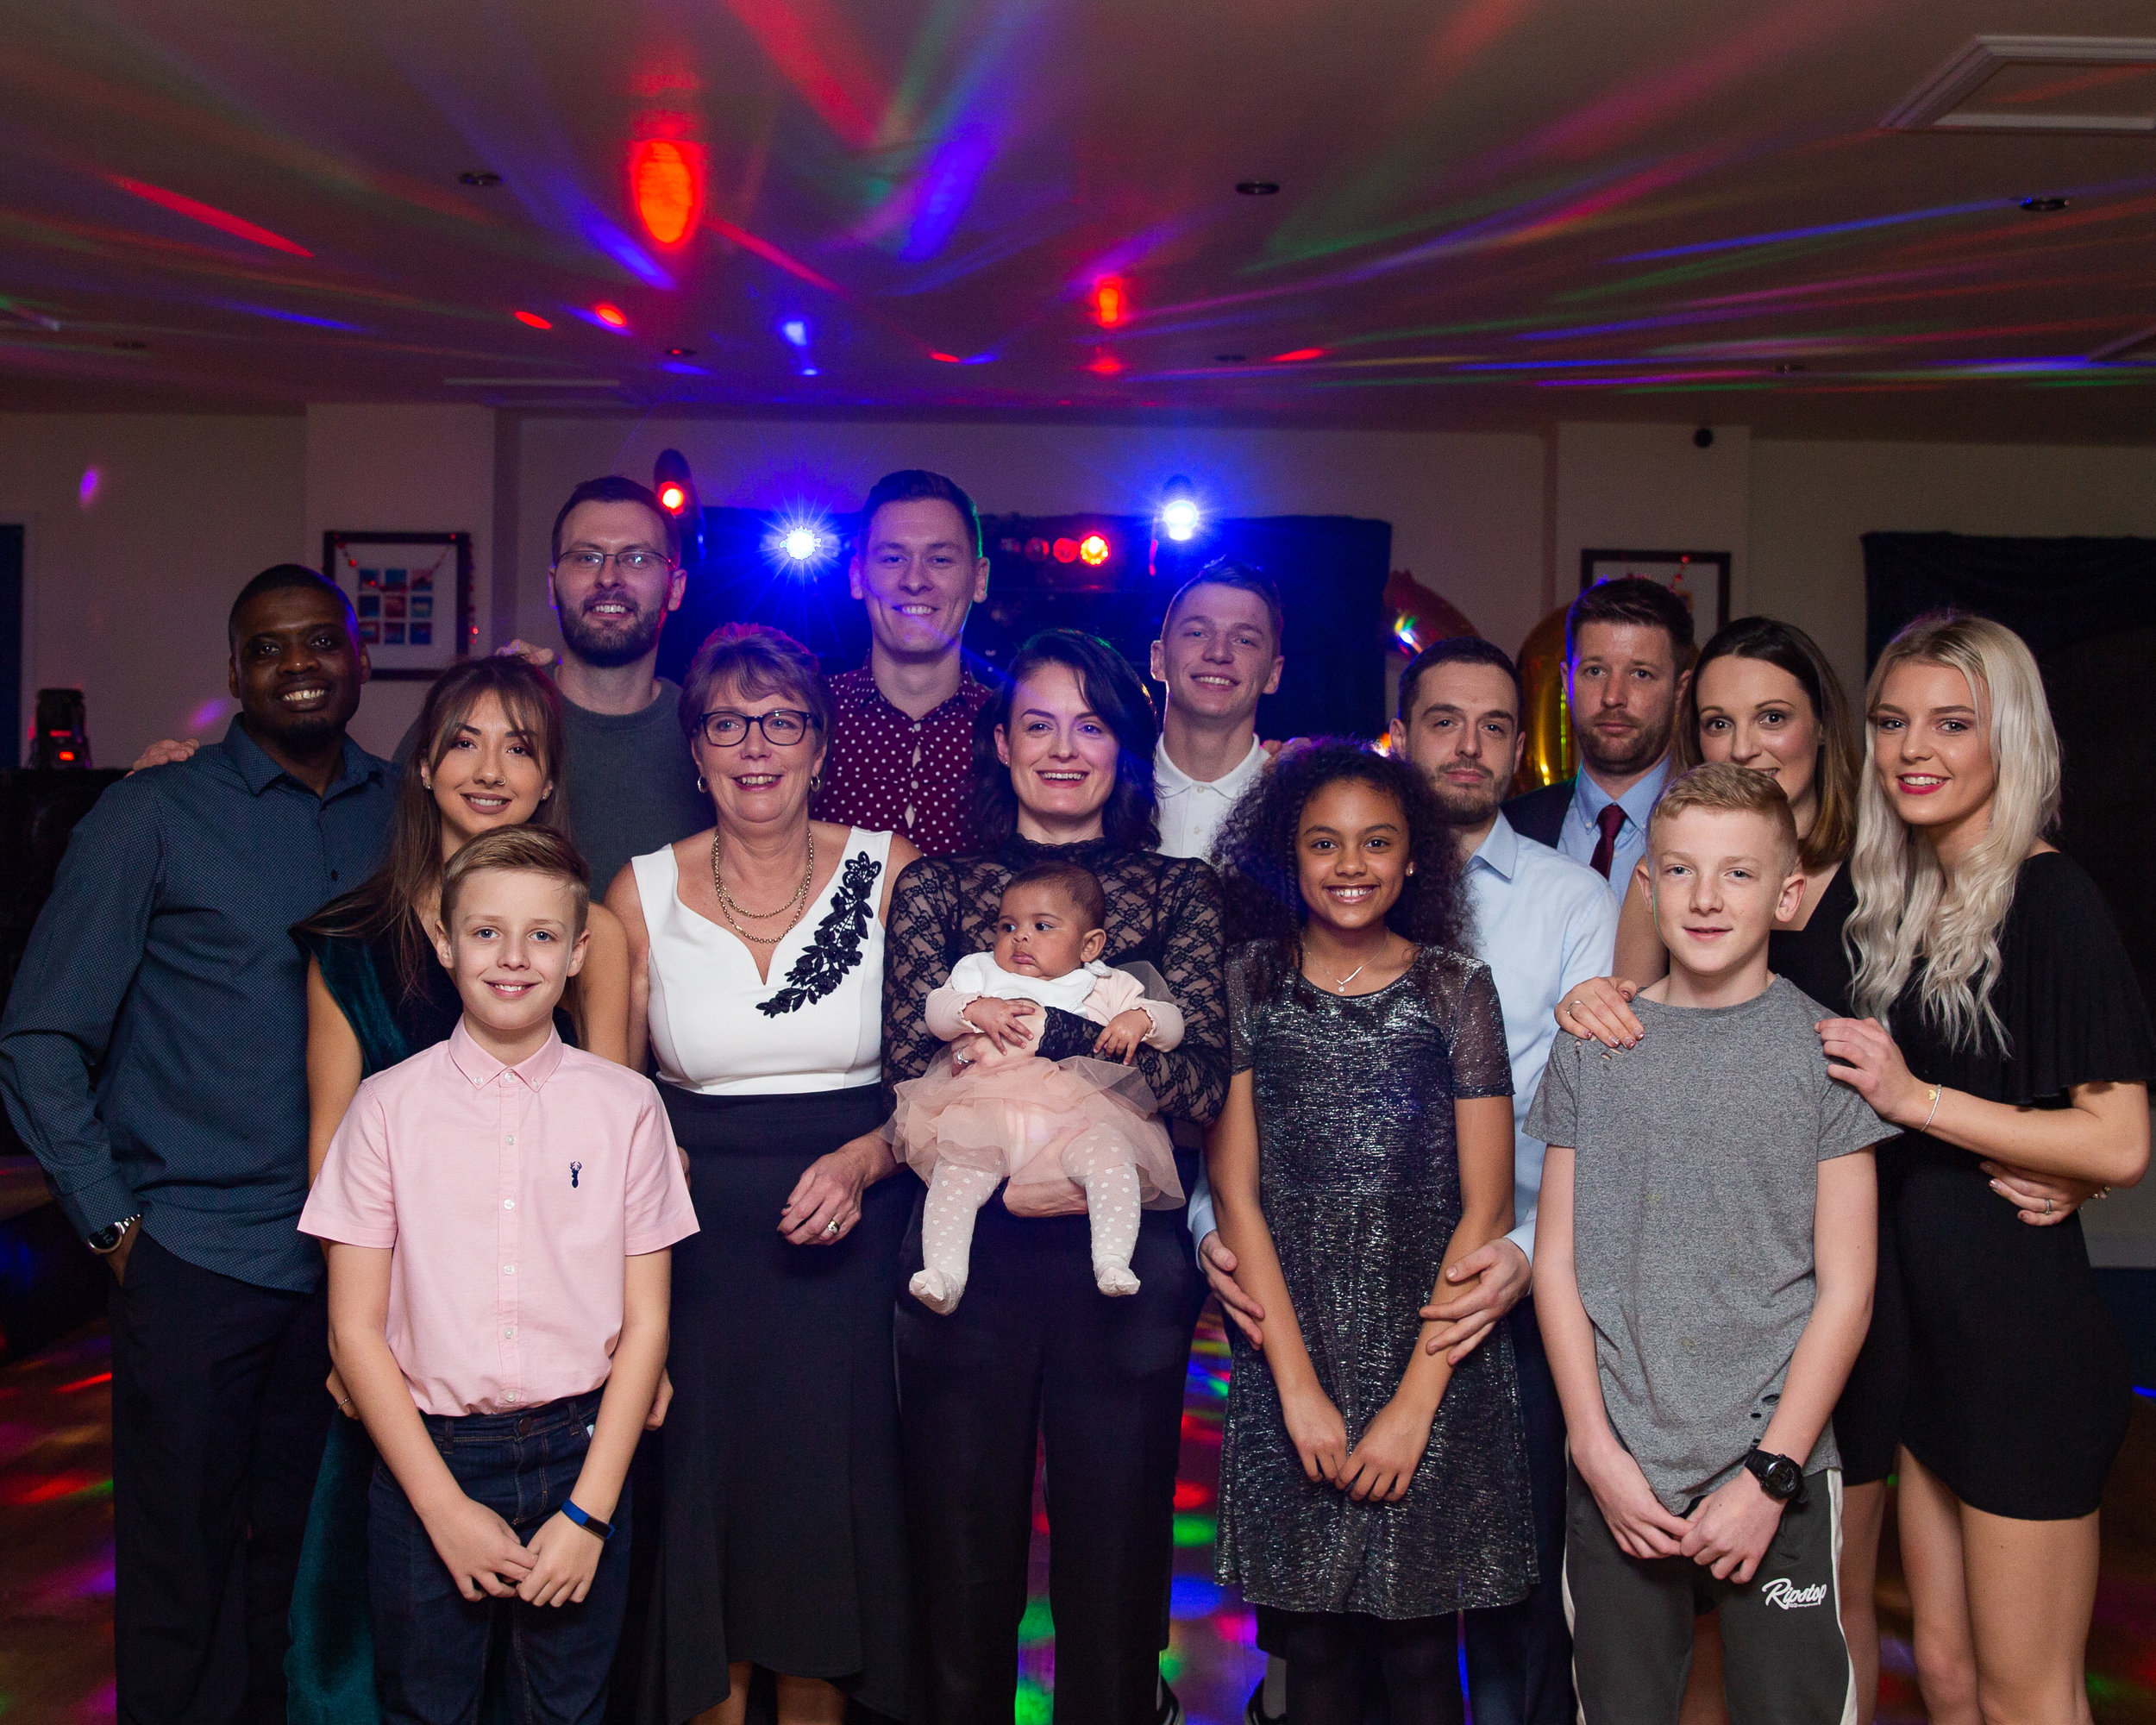 Claire Meldrum Photography PB-1103.jpg Party photography Staffordshire